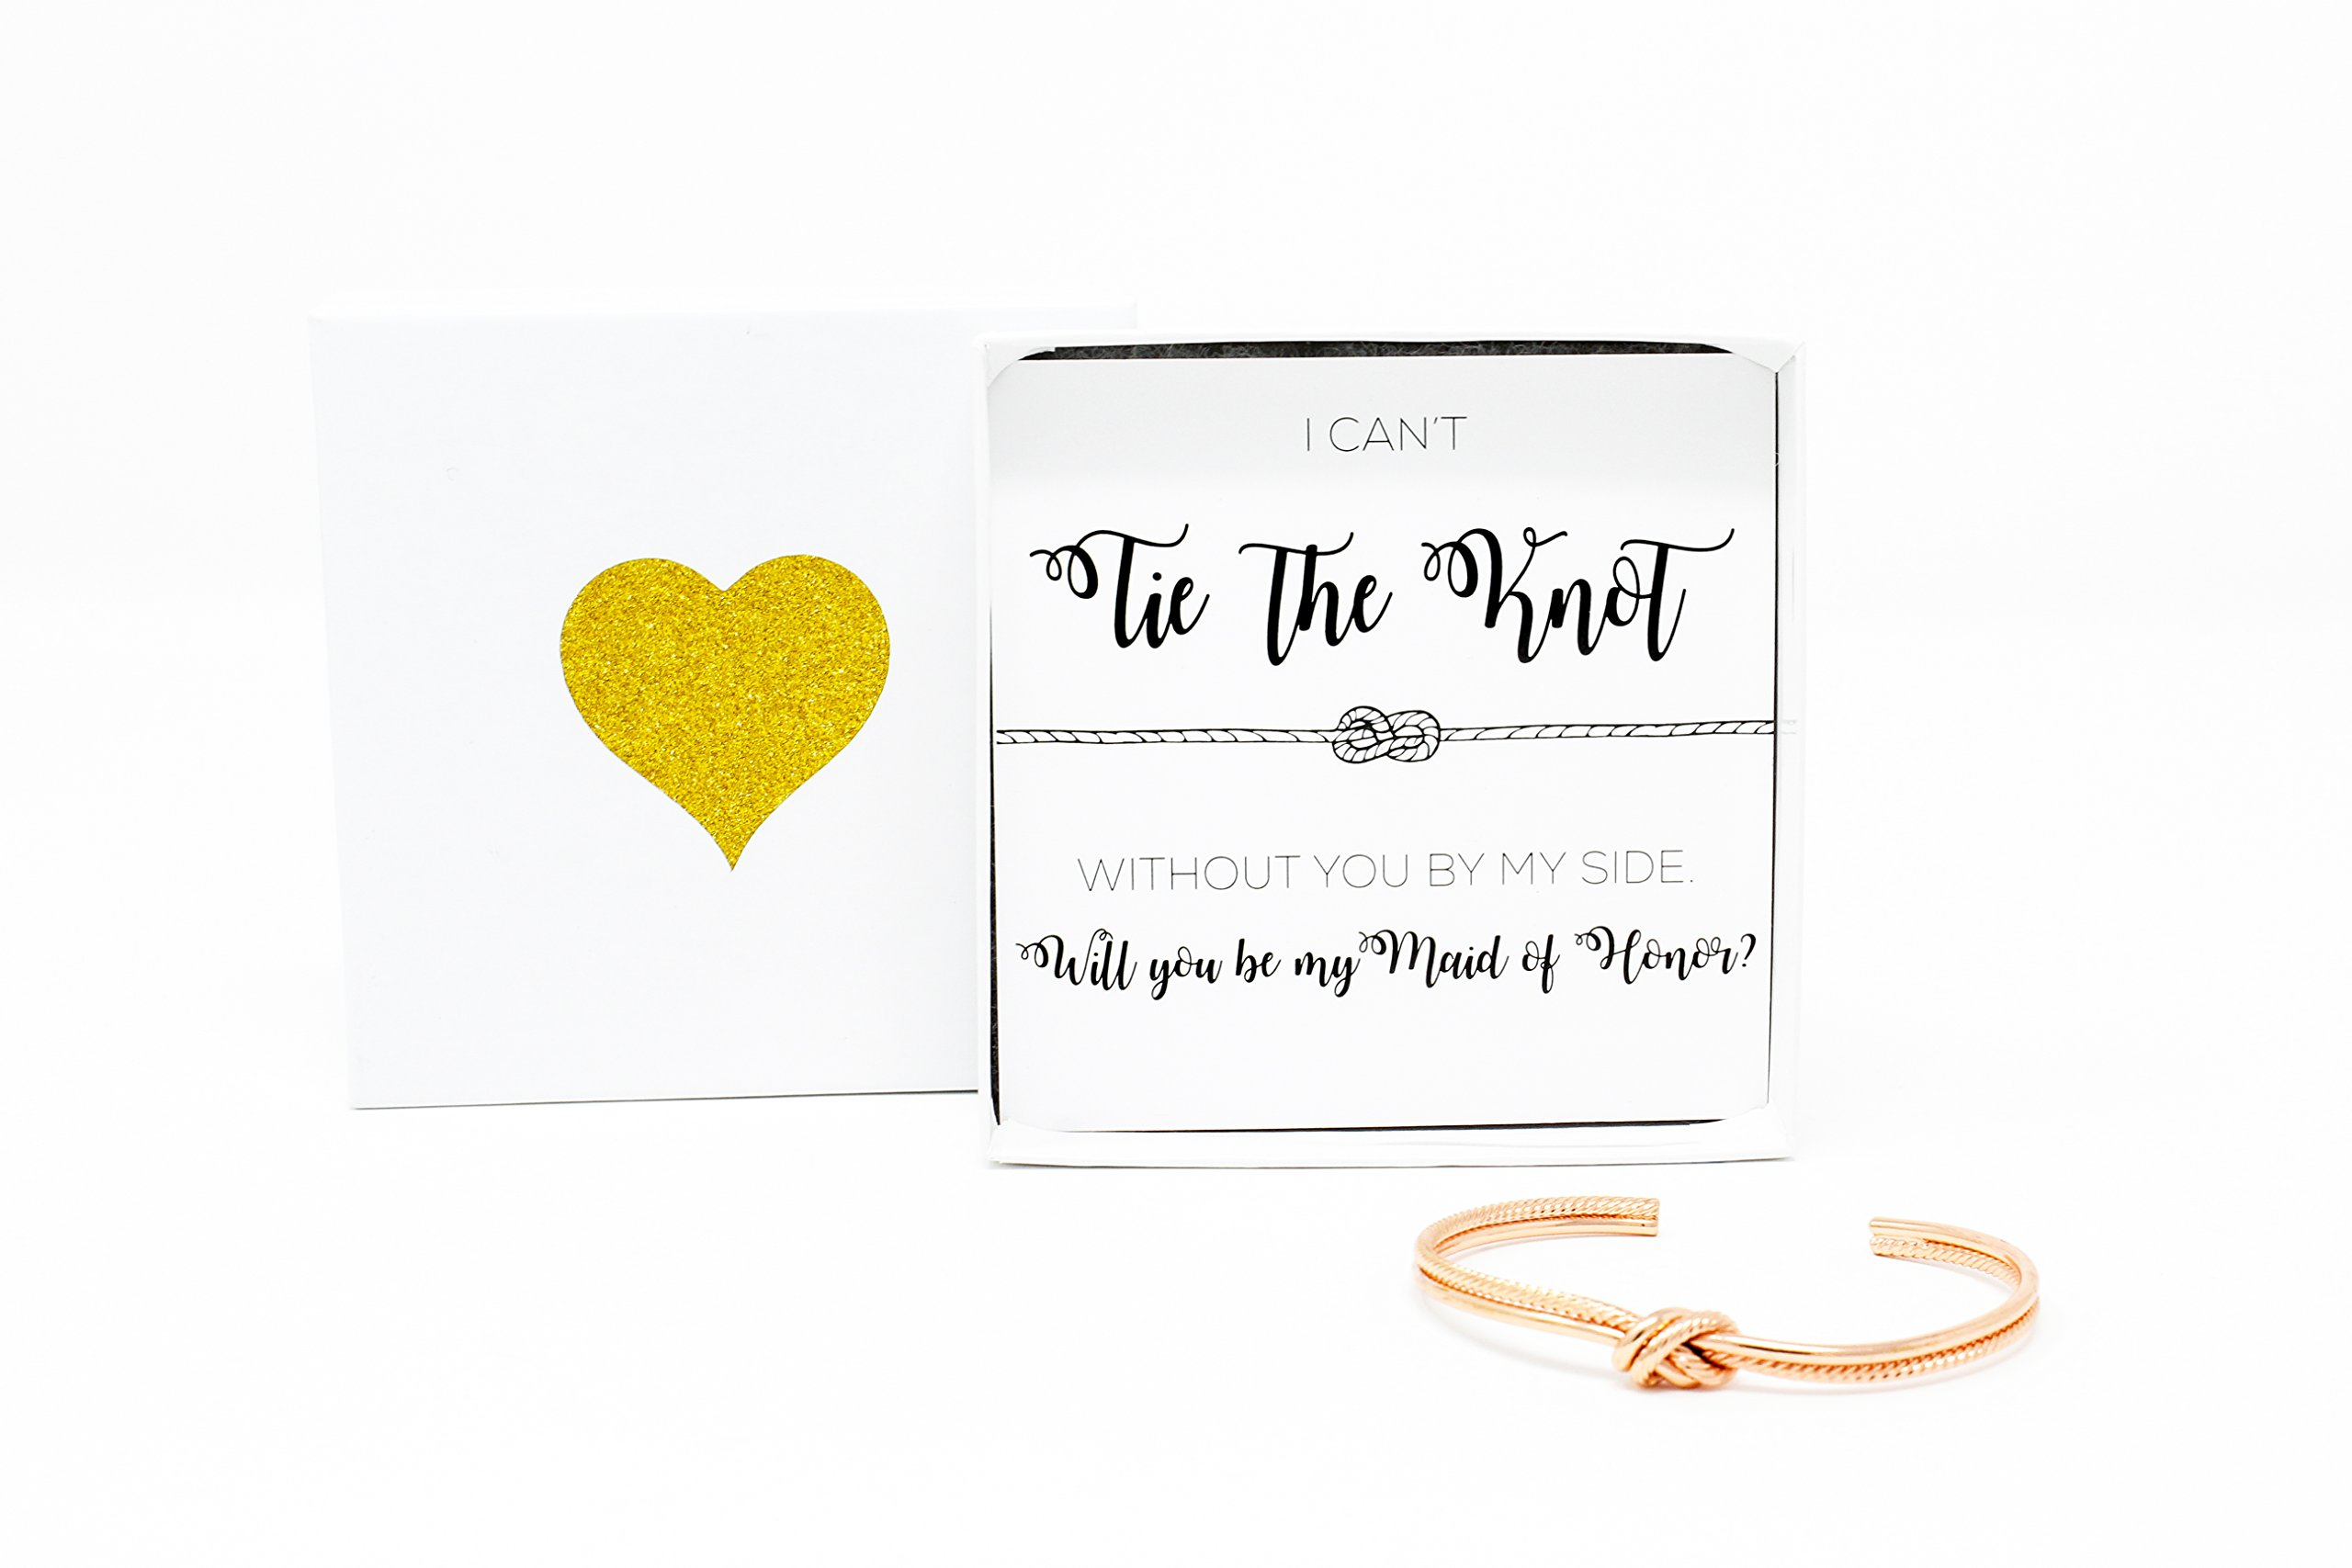 Bridesmaid Gifts - Tie The Knot Maid of Honor Bracelet w/Gift Box, Sailor Bridal Party Gift Sets, Adjustable Love Knot Cuff Bracelet (Gold, Rose Gold, Silver) (Rose Gold)